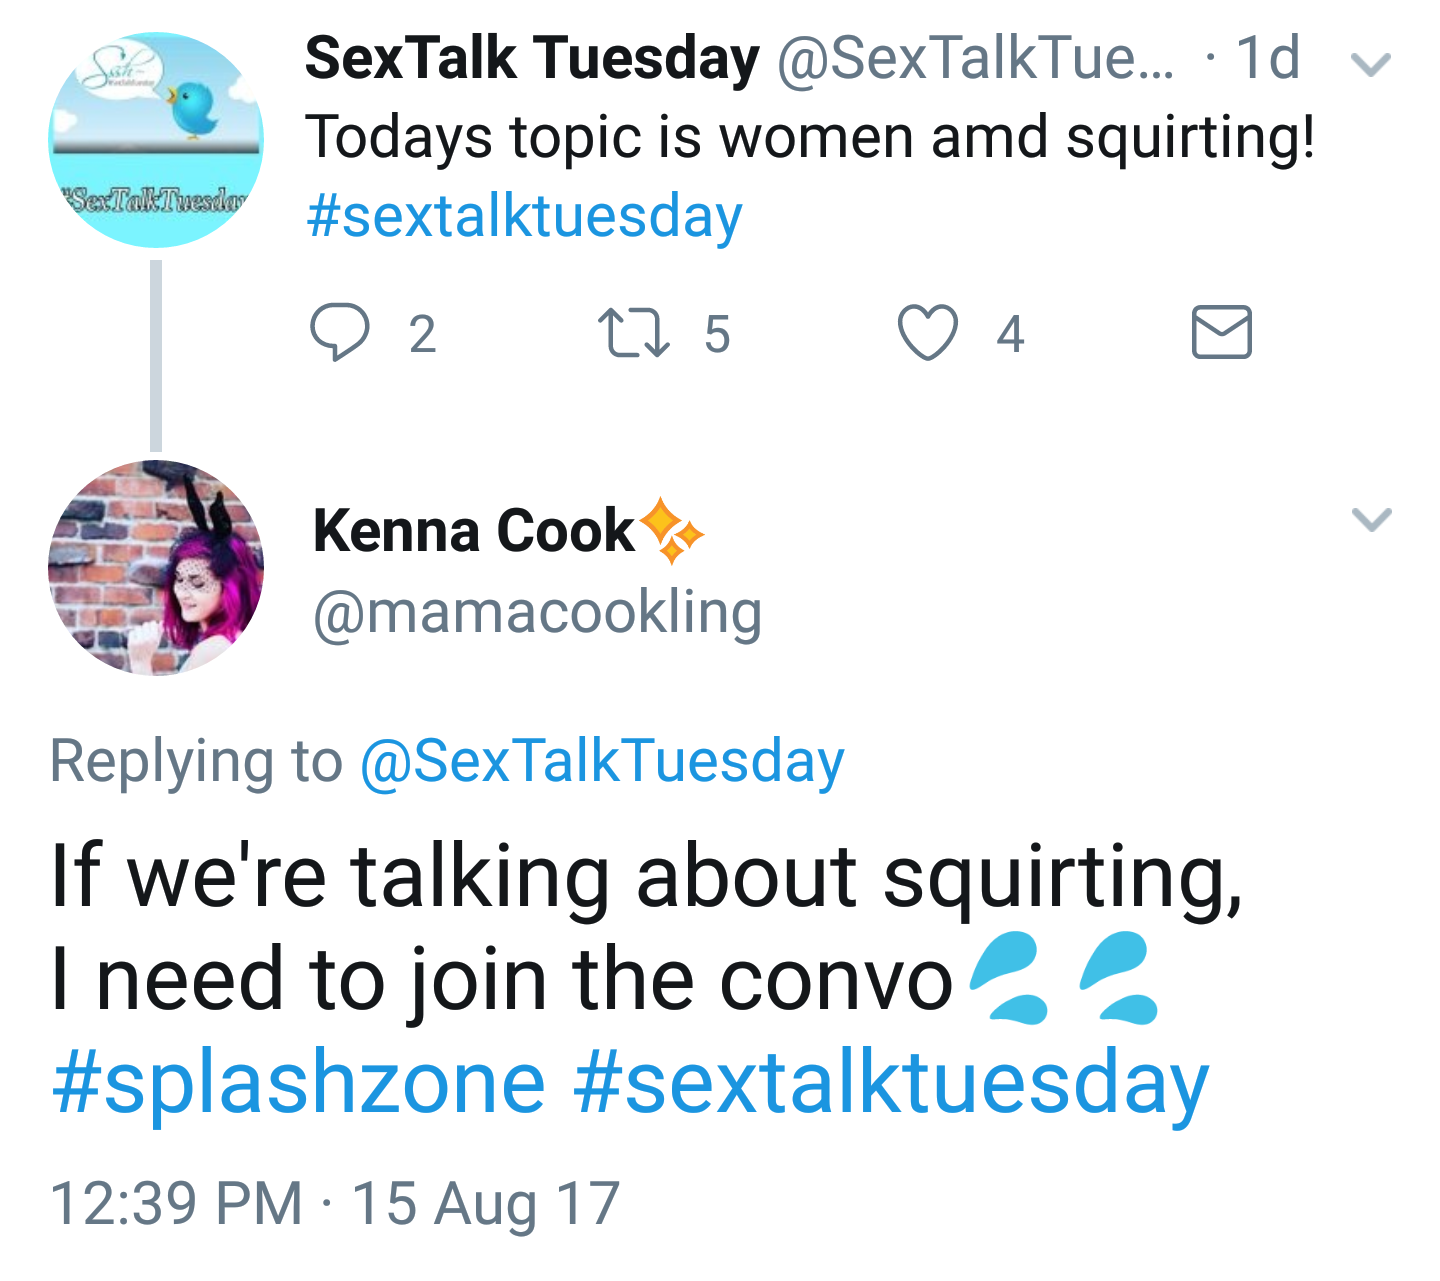 4 Porn Squirting the science of squirt - kenna cook - medium